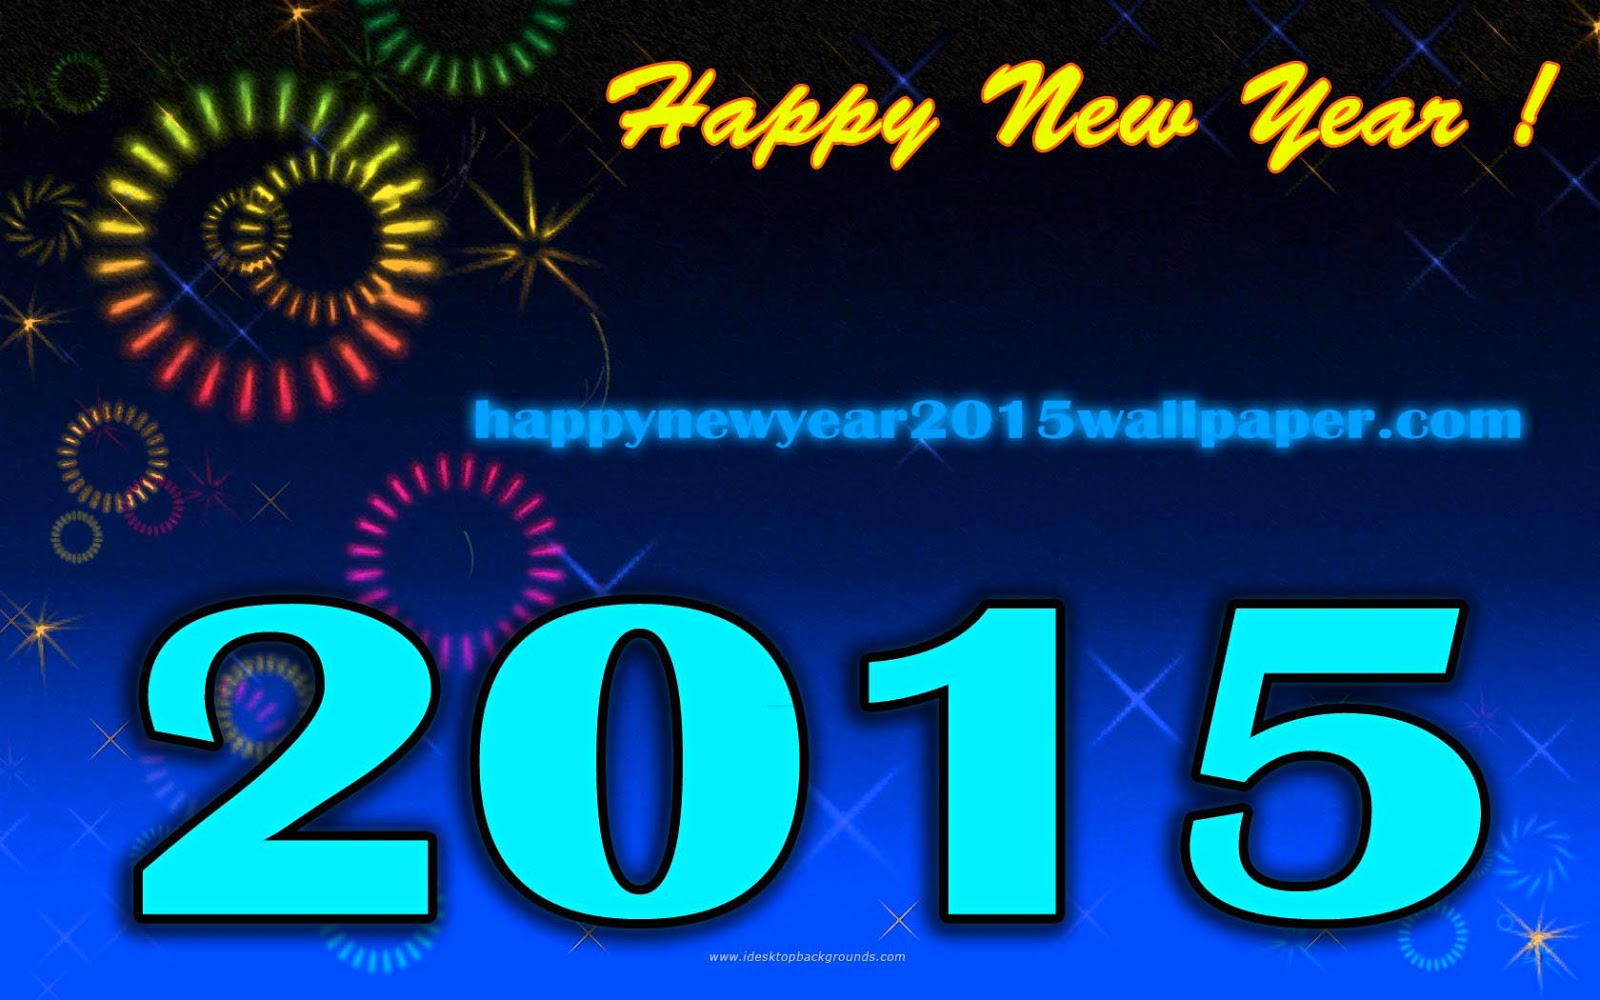 happy new year 2015 wallpaper for greetings. Use these 2015 happy new